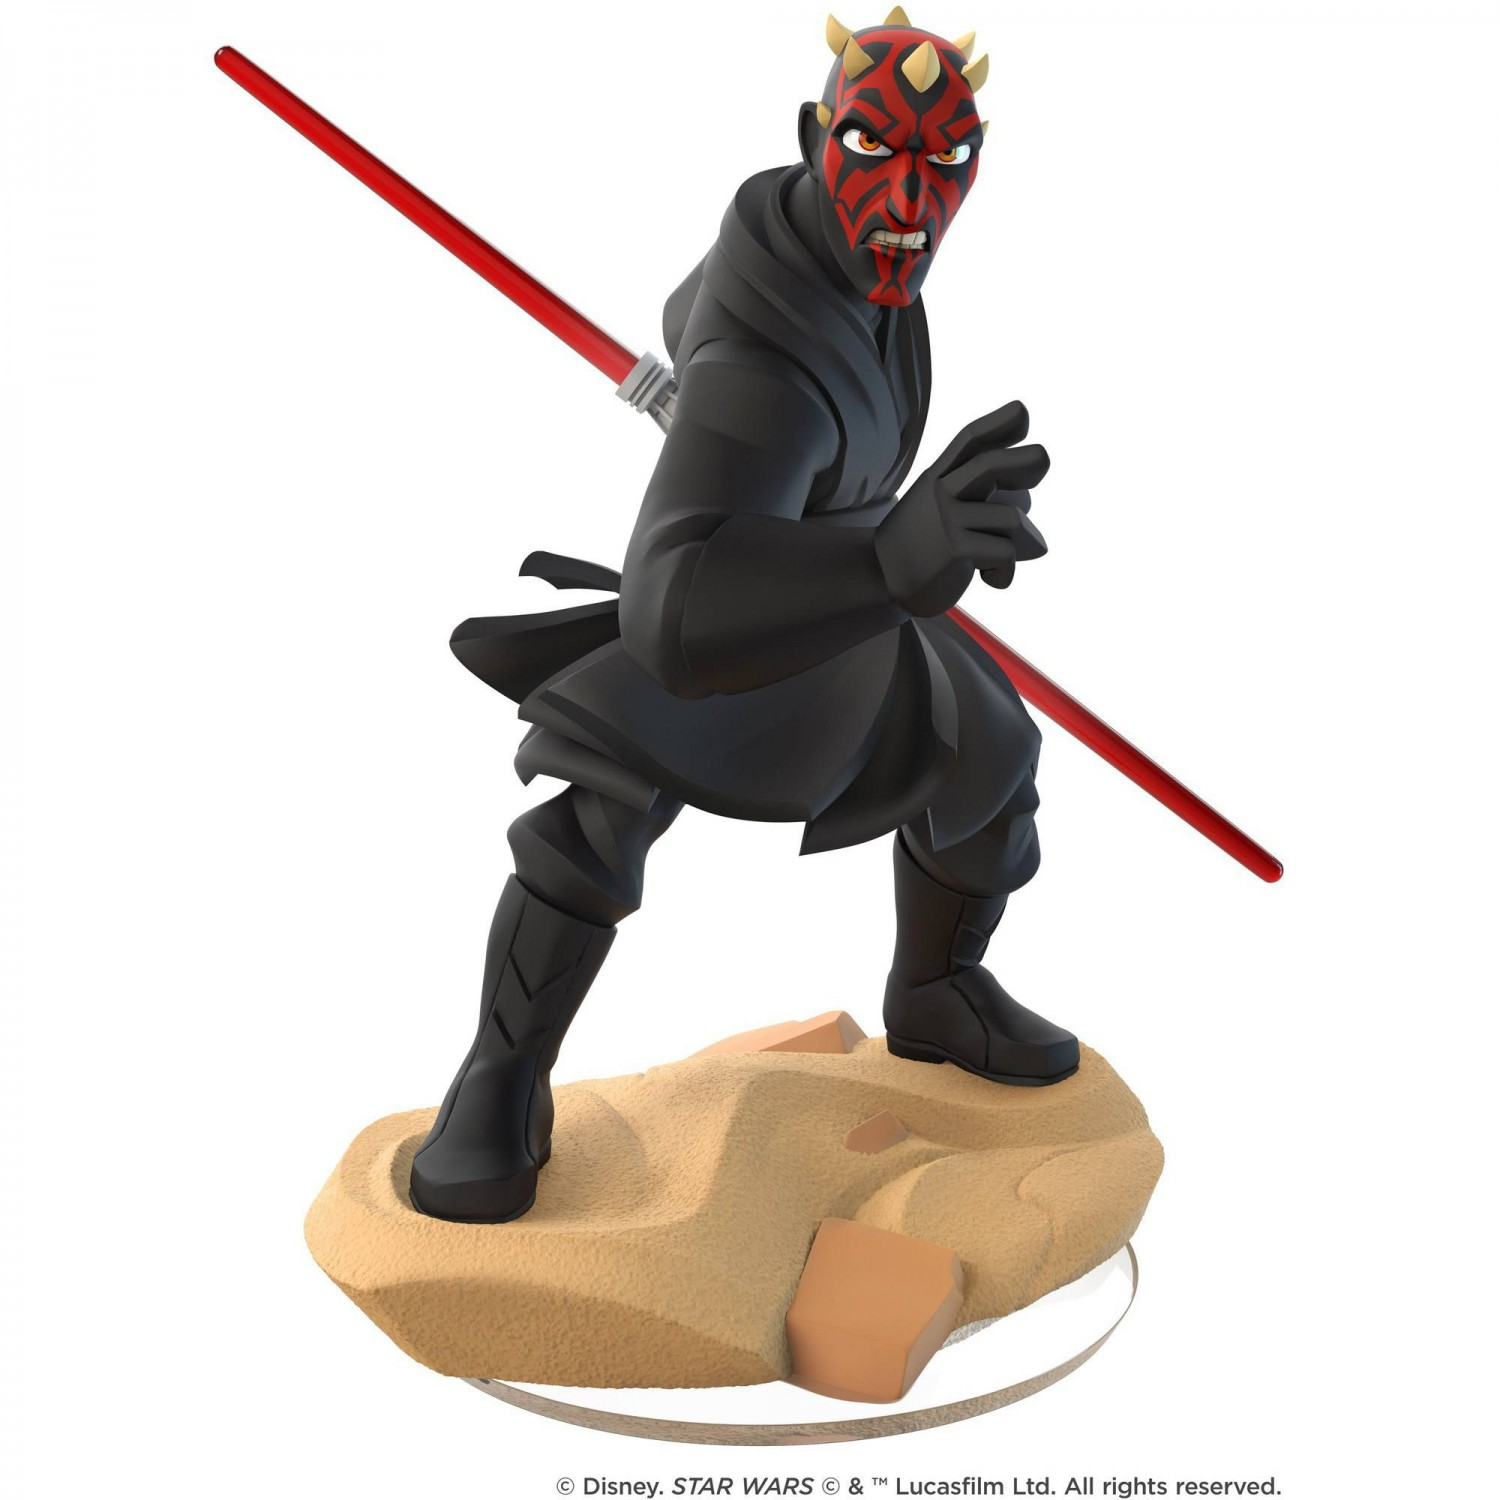 Disney Infinity 3.0 Star Wars - Darth Maul